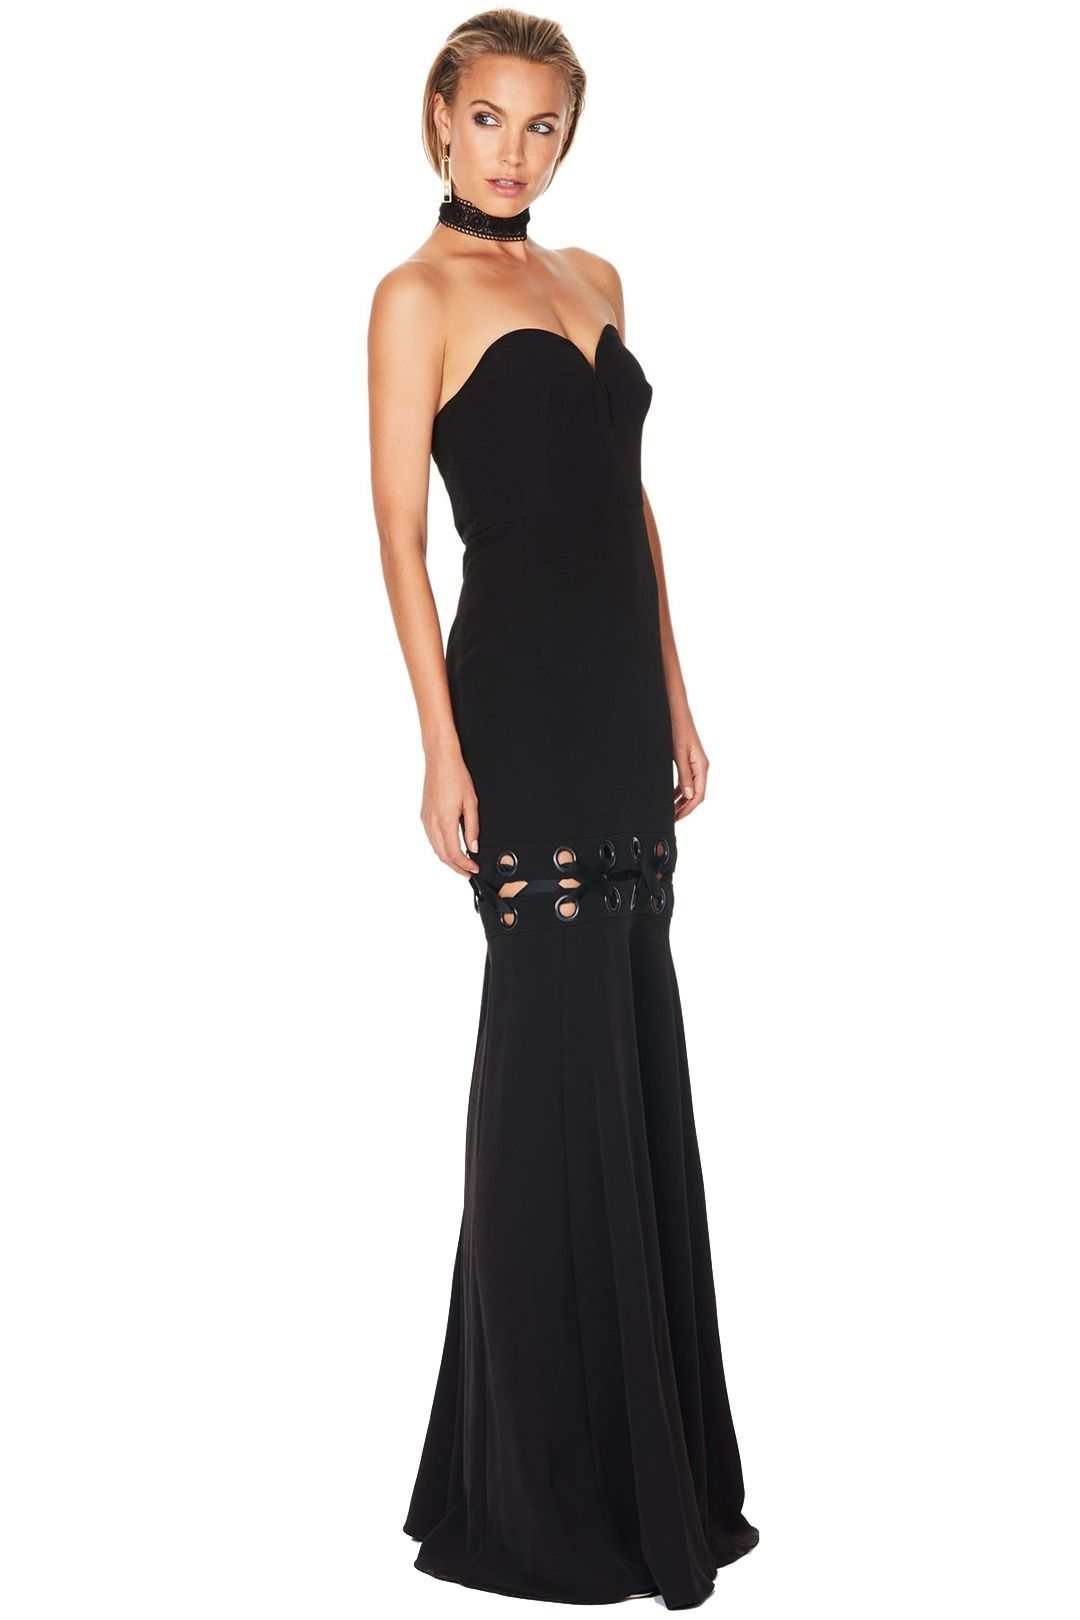 Talulah - Lace Me Gown - Black - Side